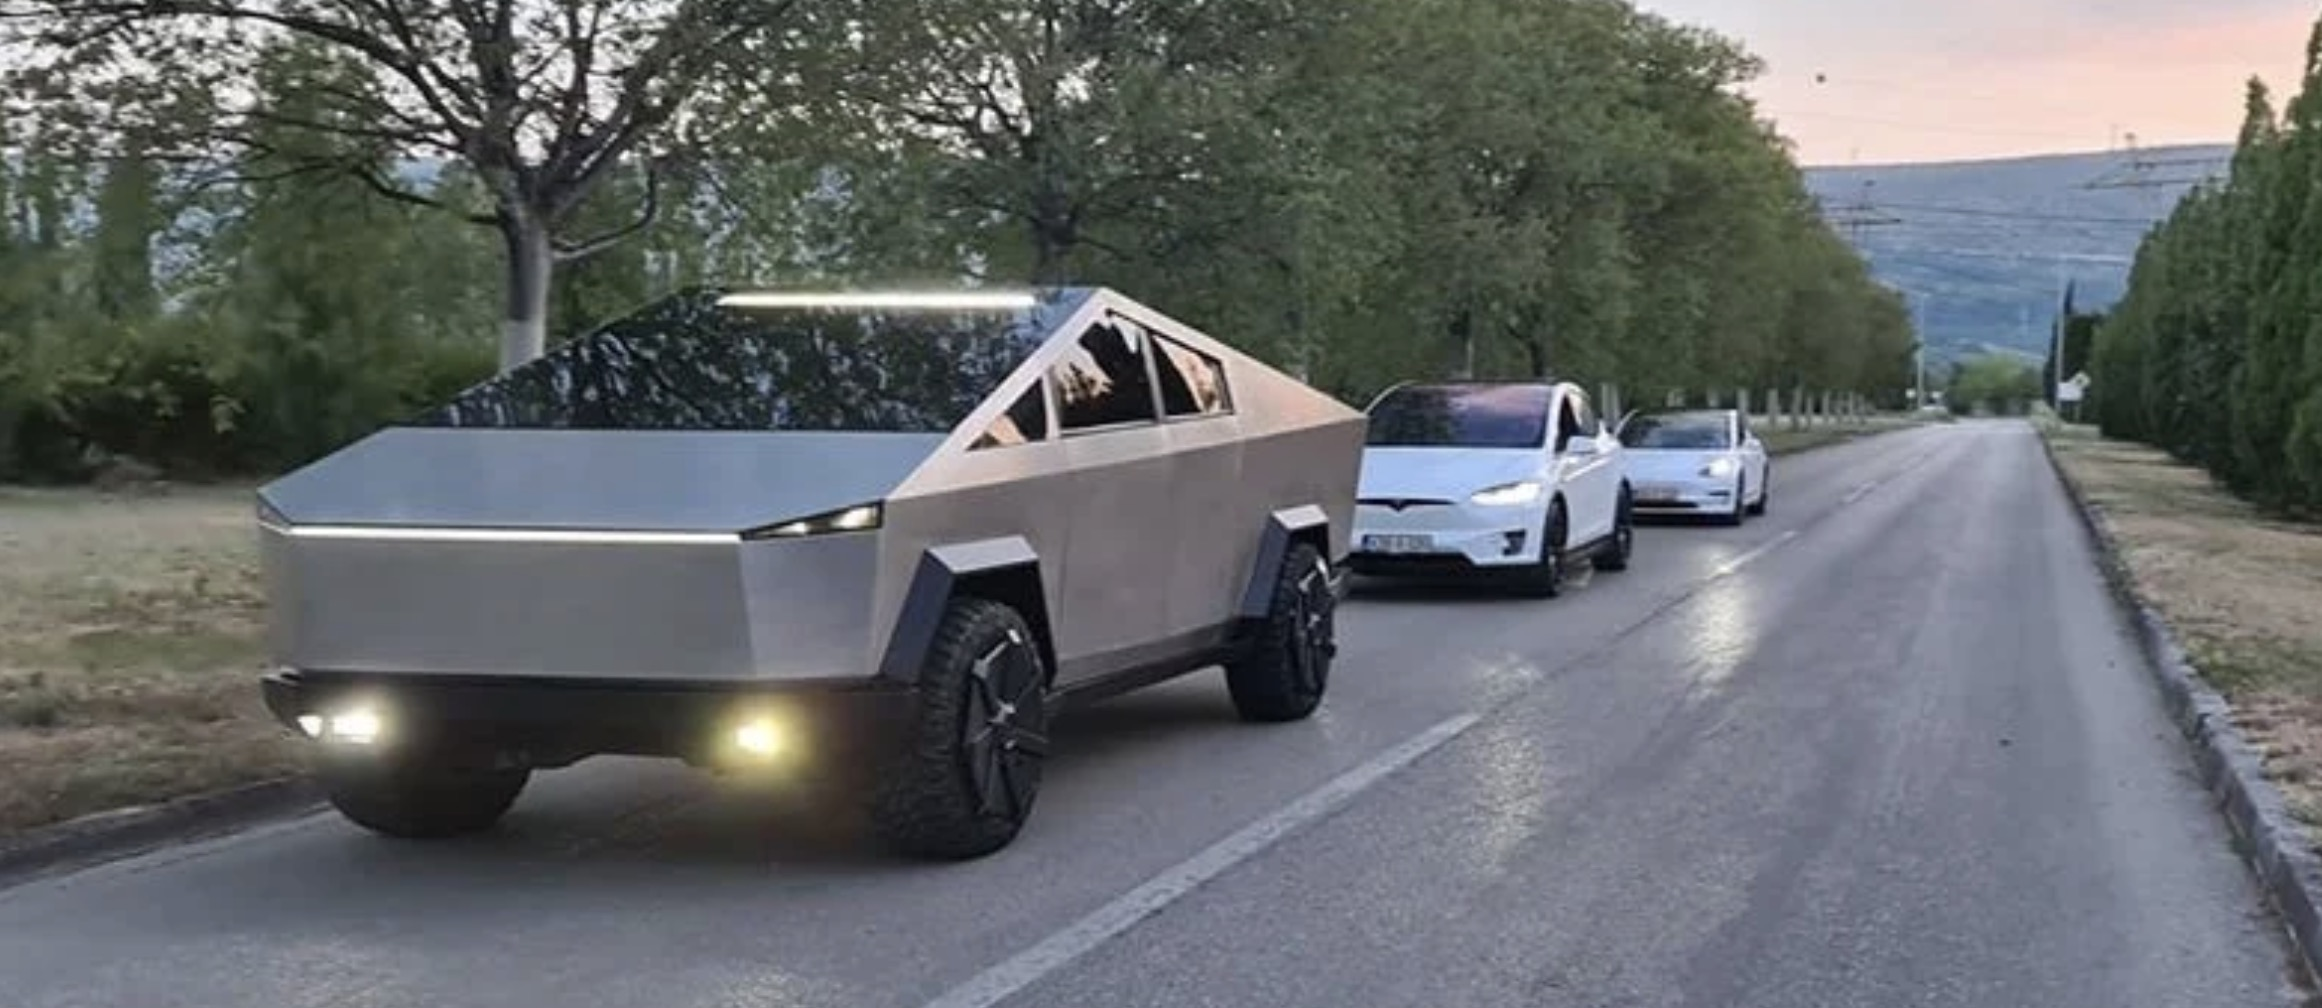 Tesla Cybertruck electric pickup working replica looks insanely good inside and out - Electrek